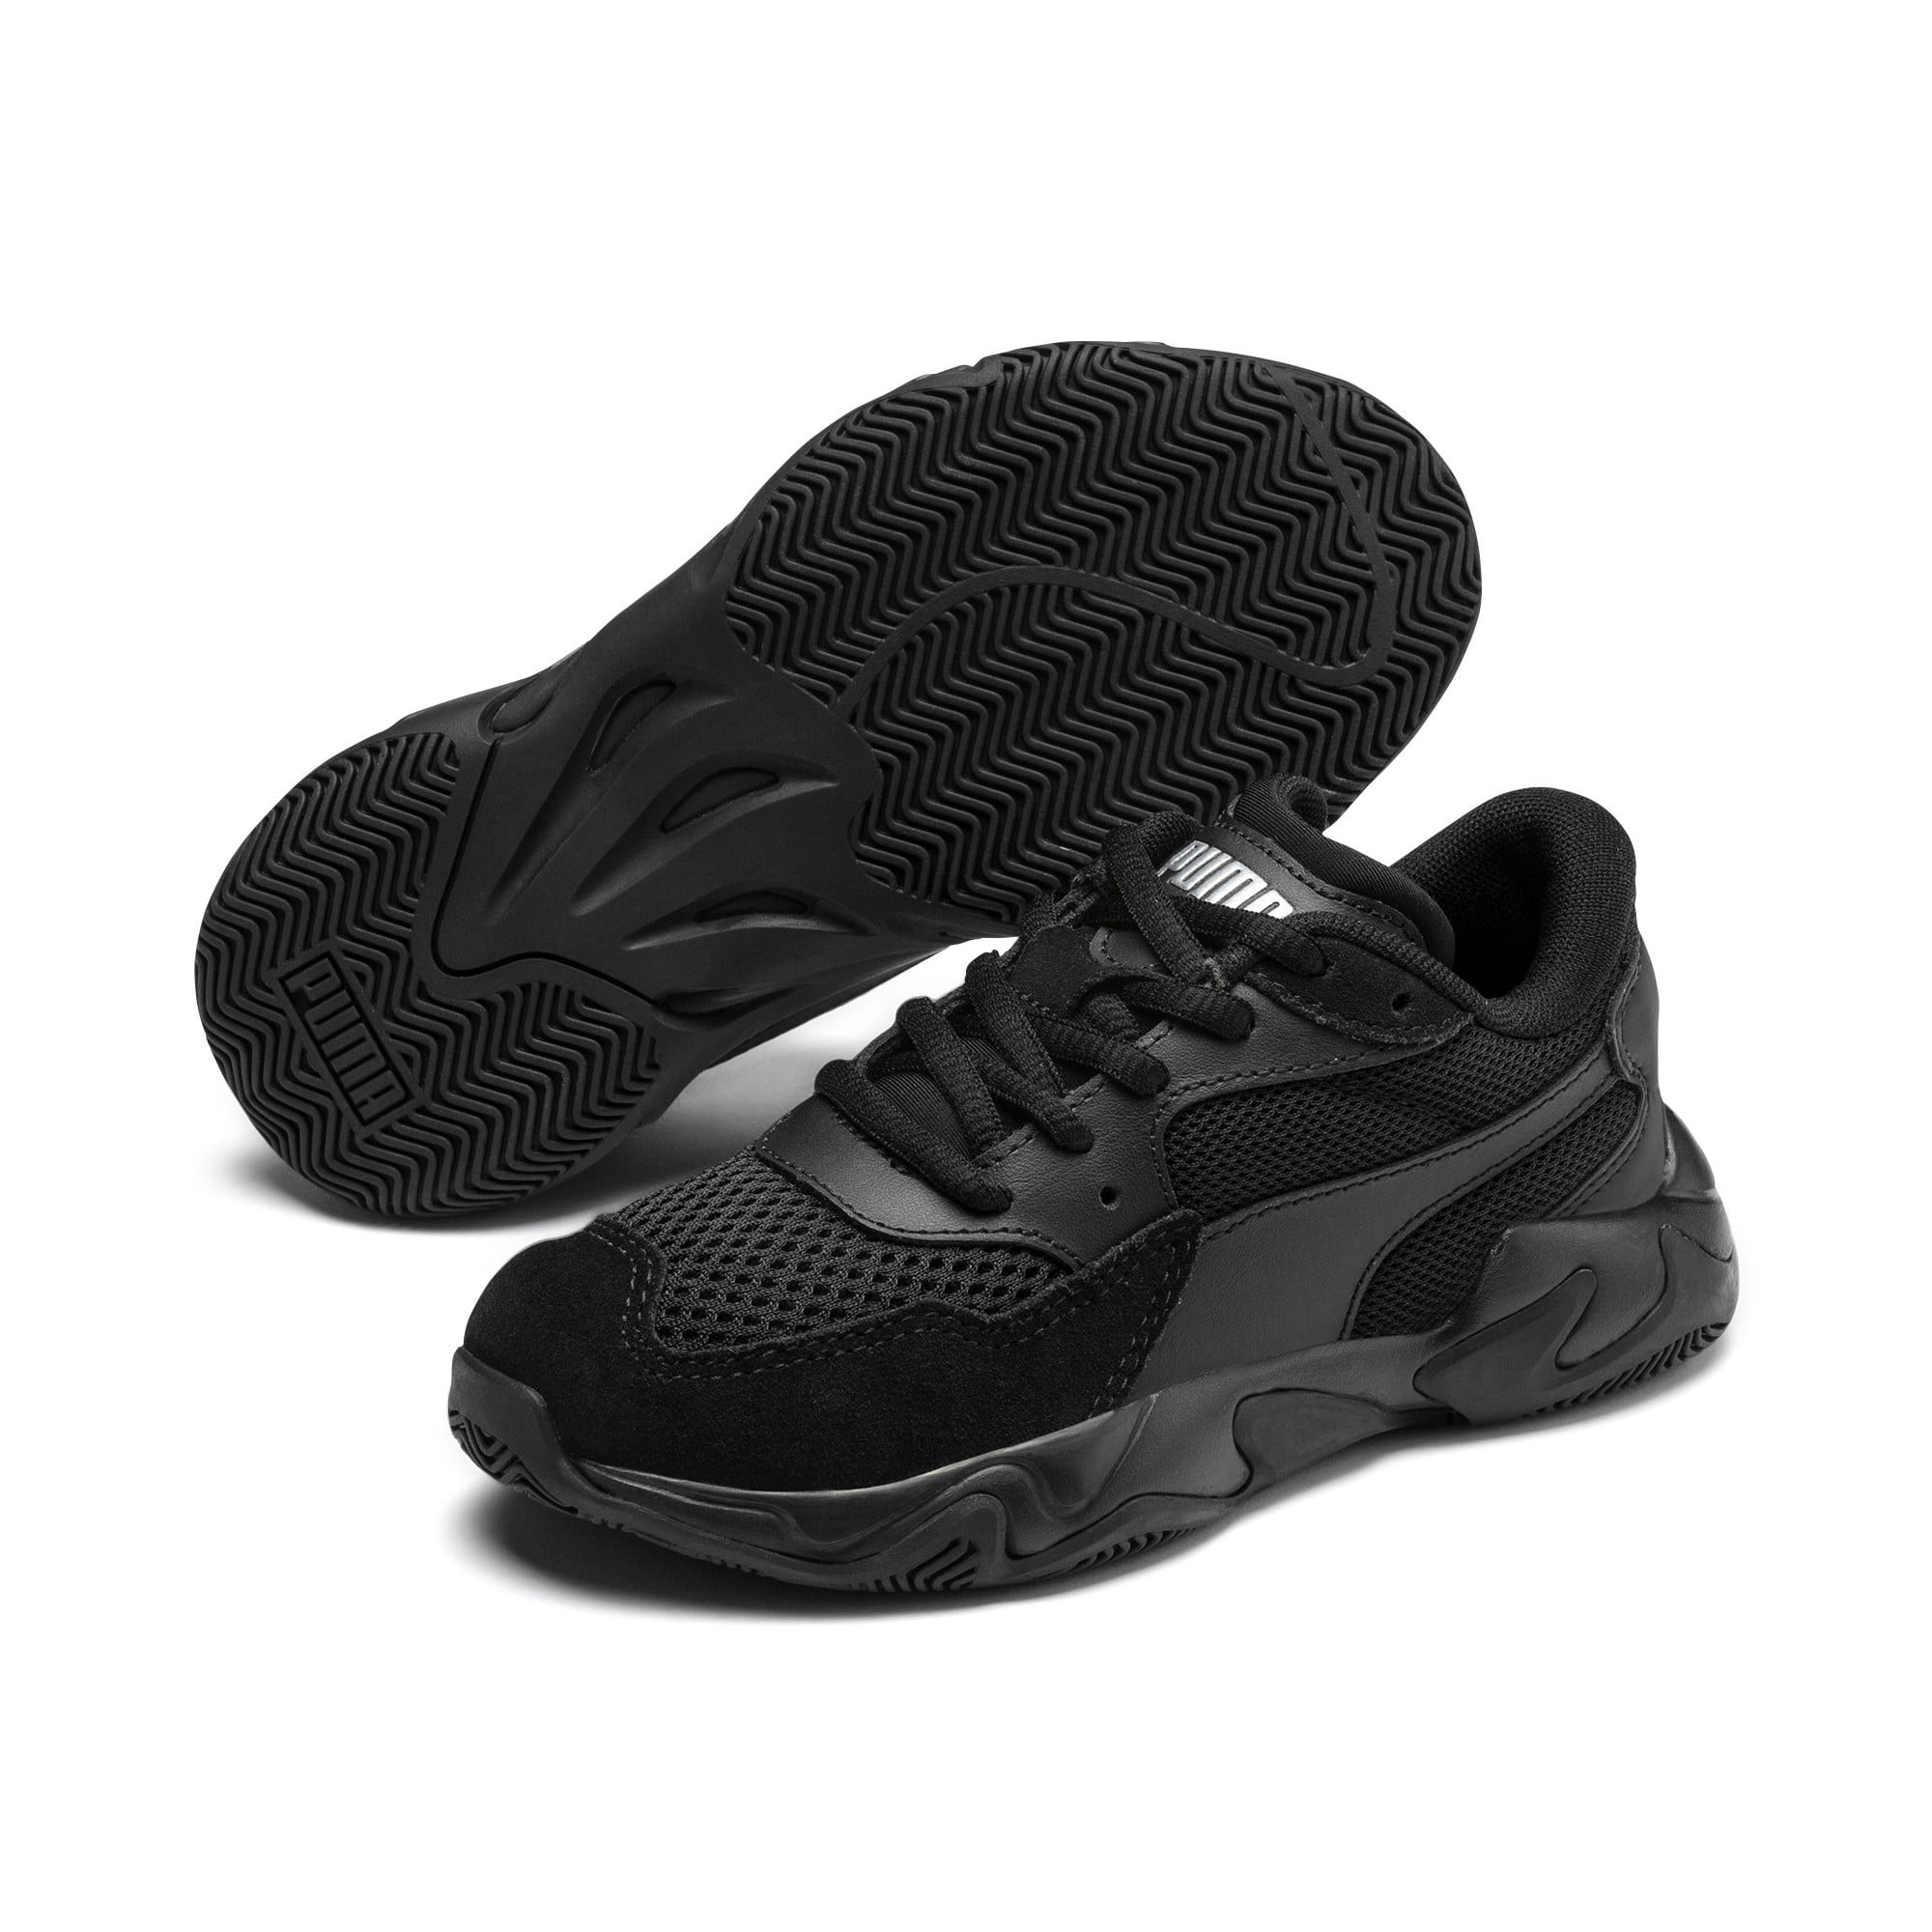 Thumbnail 2 van Storm Origin kindersportschoenen, Puma Black, medium